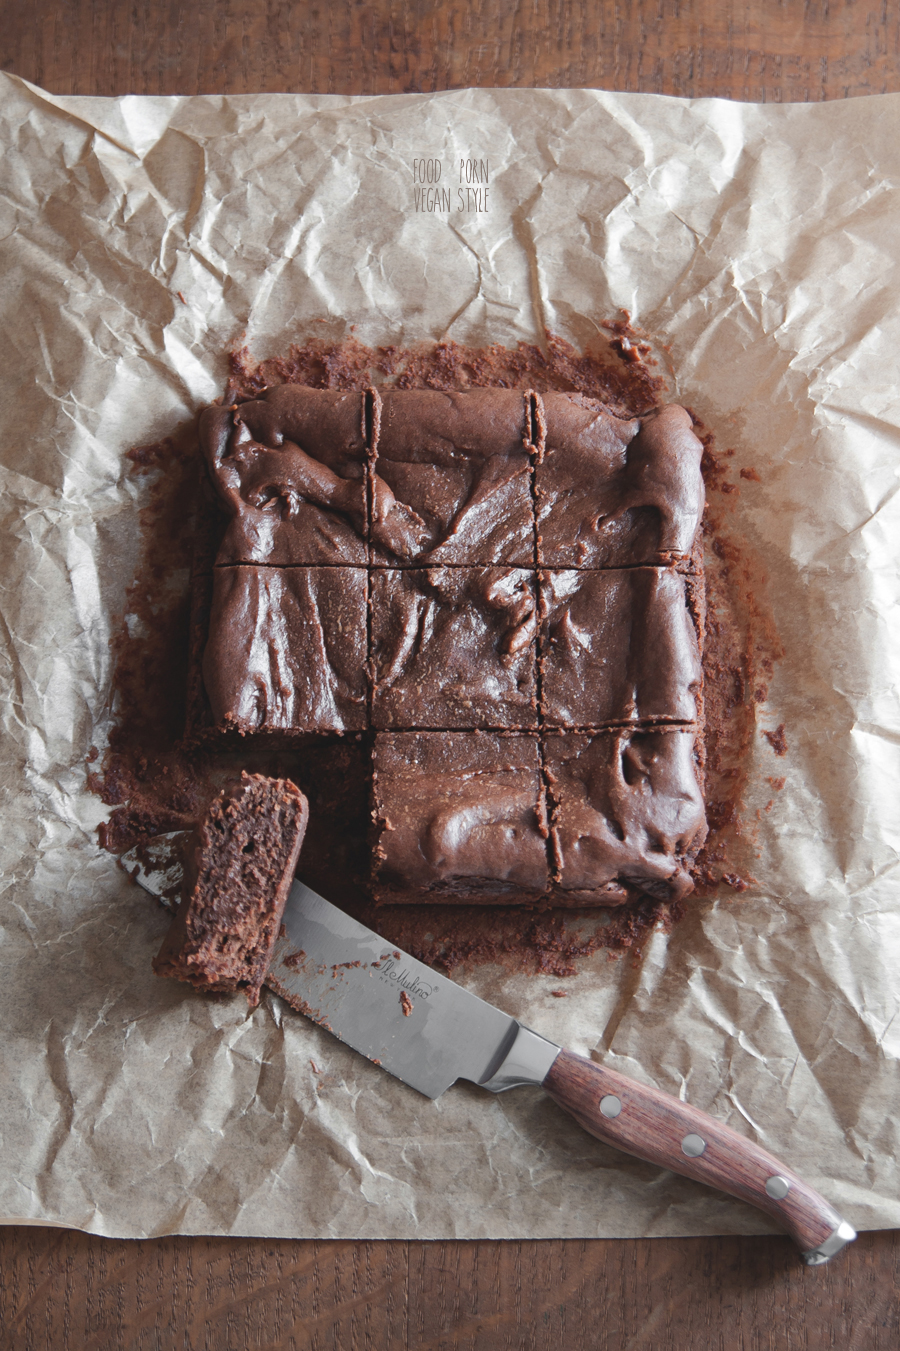 Vegan tahini brownie